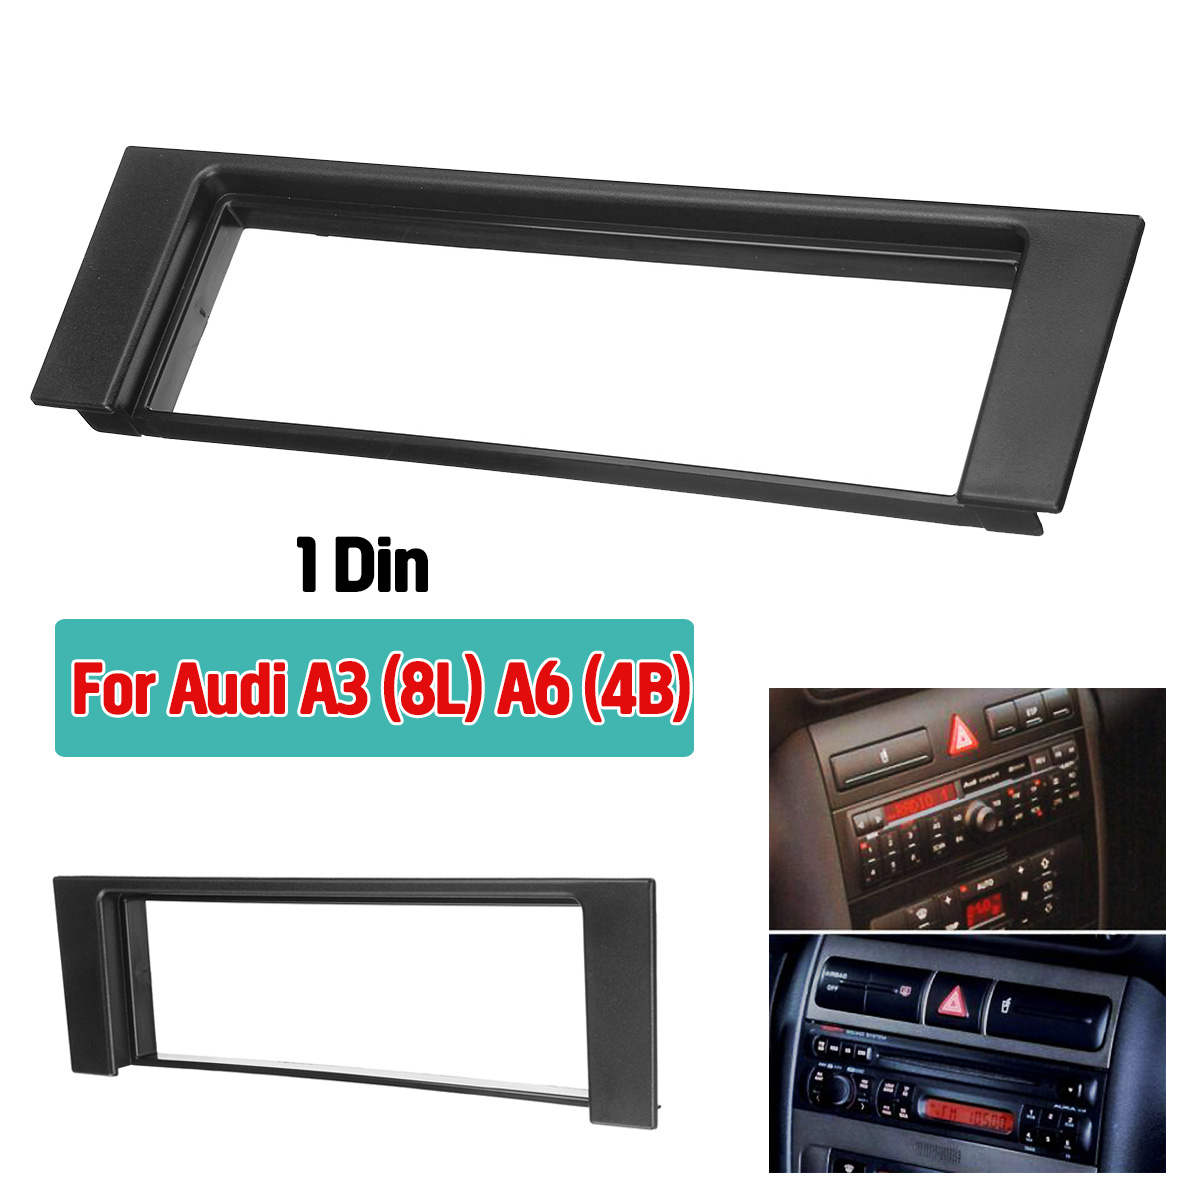 Car Fascia Stereo Audio Radio Plate Panel Dash Frame Fascias Replacement For <font><b>Audi</b></font> A3 8L <font><b>A6</b></font> 4B Fiat Scudo For Seat Toledo Leon image